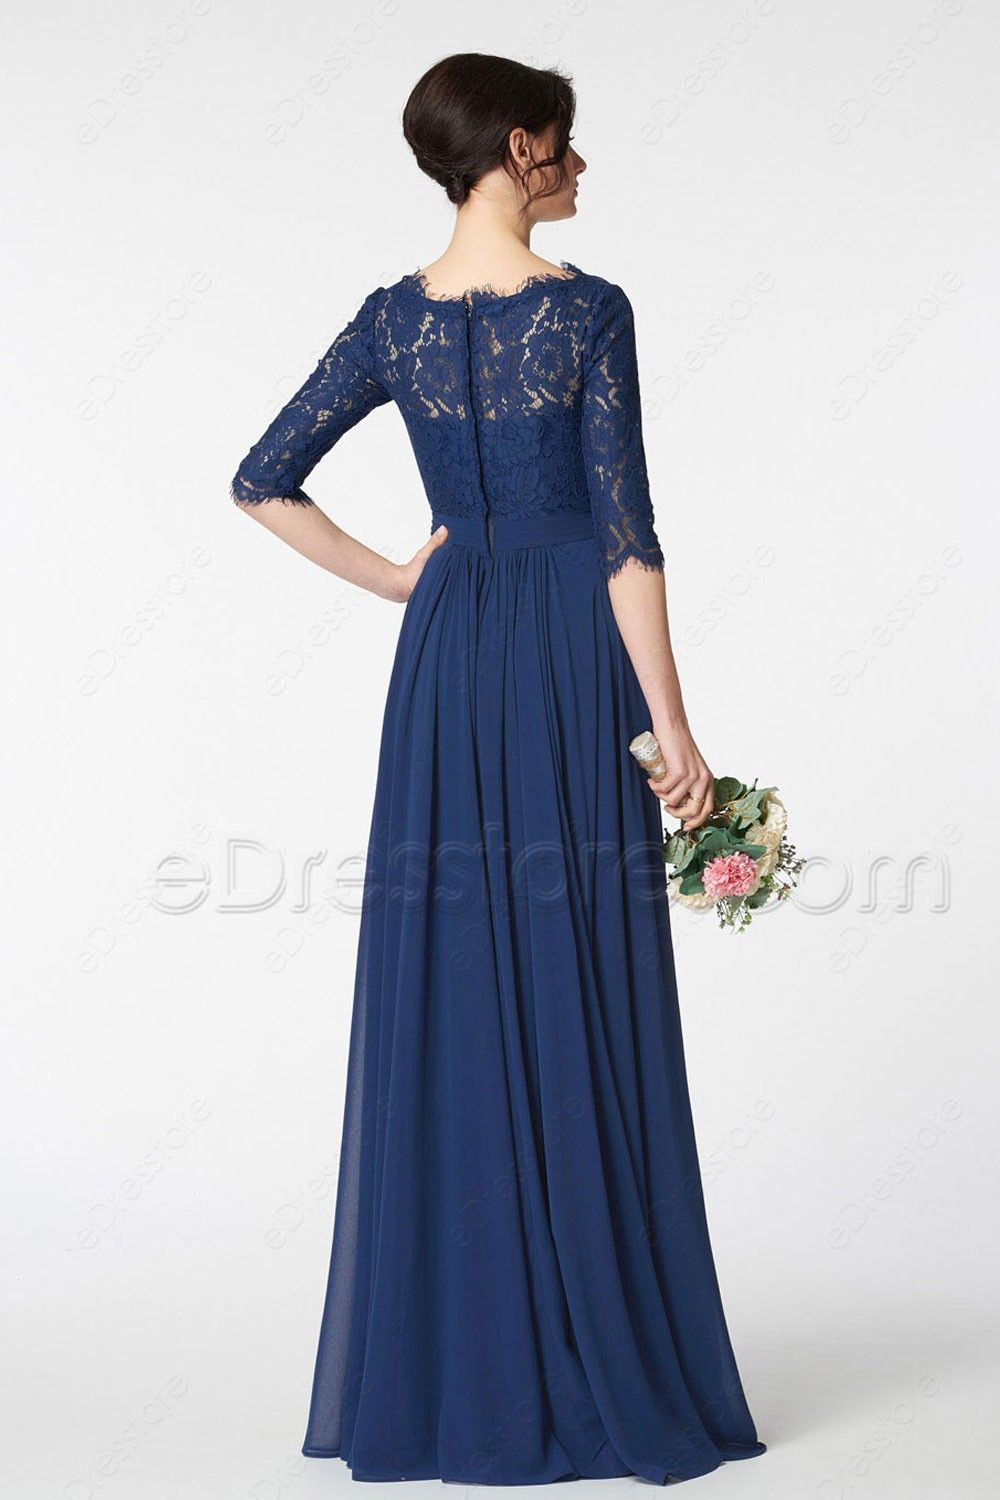 Navy Blue Lace Modest Bridesmaid Dress With Sleeves Bridesmaid Dresses With Sleeves Mother Of The Bride Dresses Bridemaids Dresses Long